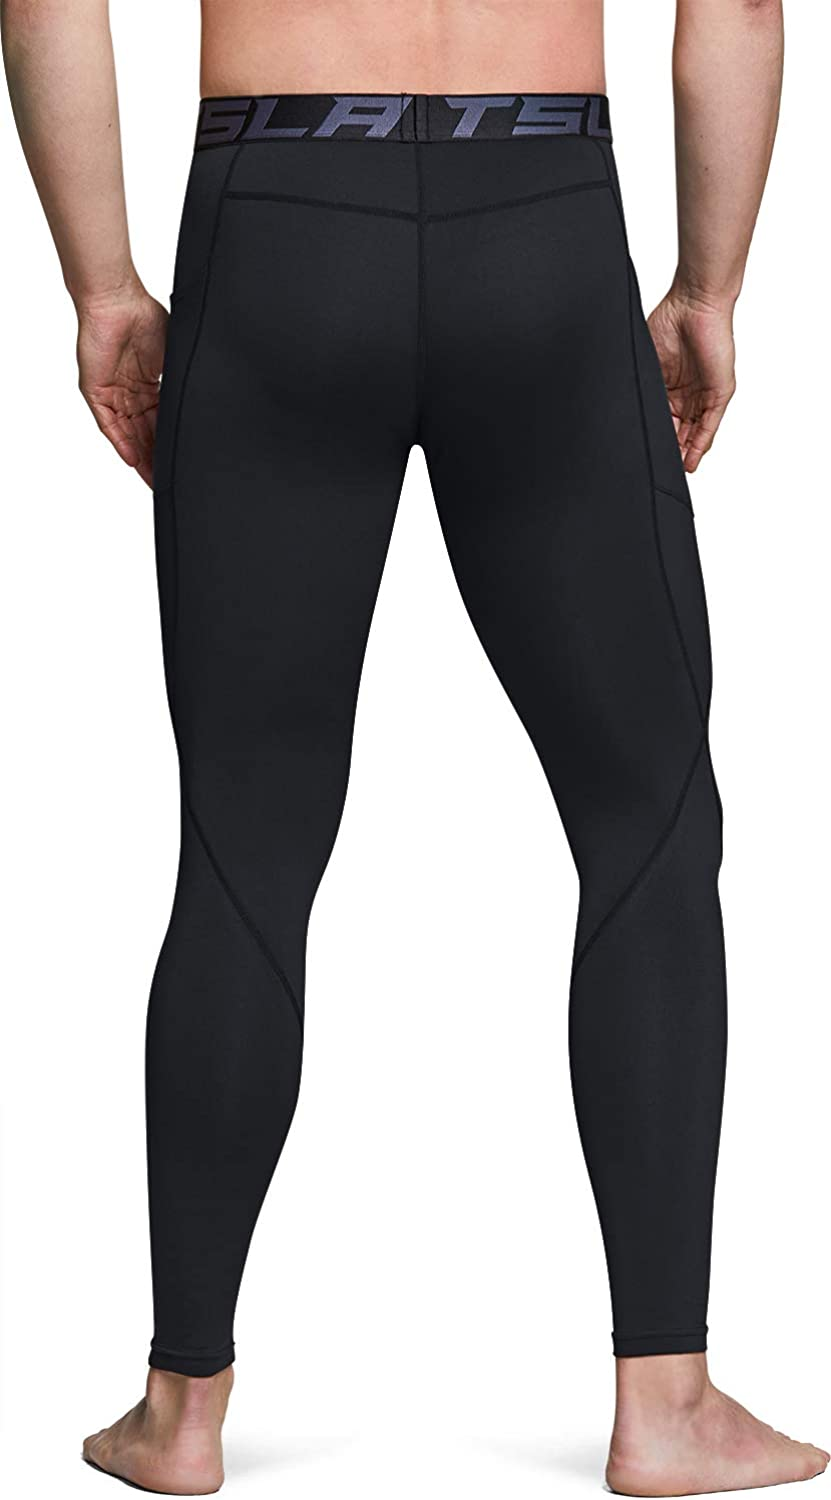 Athletic Sports Leggings /& Running Tights Wintergear Base Layer Bottoms TSLA Mens Thermal Compression Pants